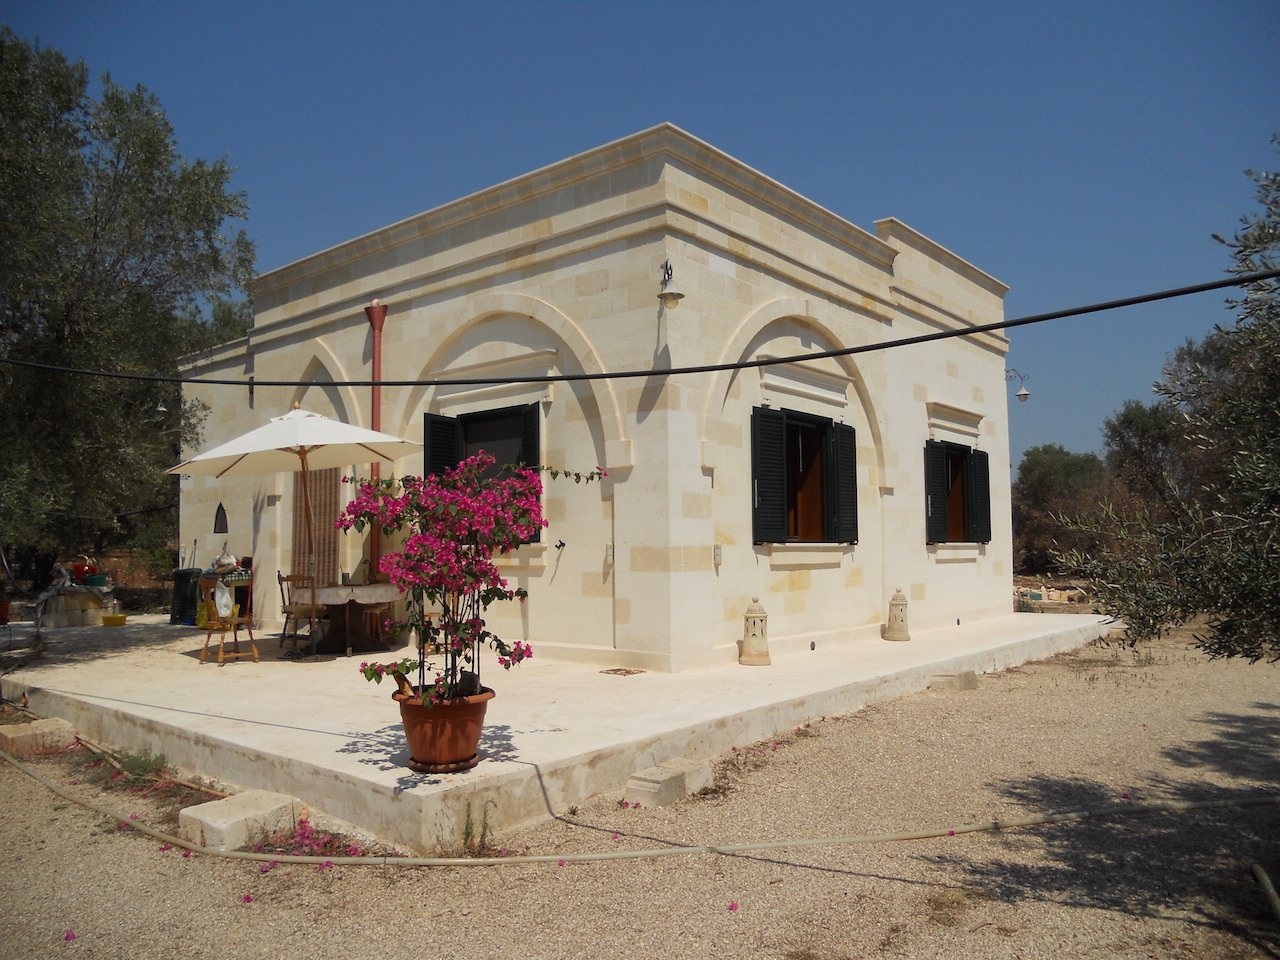 Newly built home for sale in Puglia Italy, with olive grove